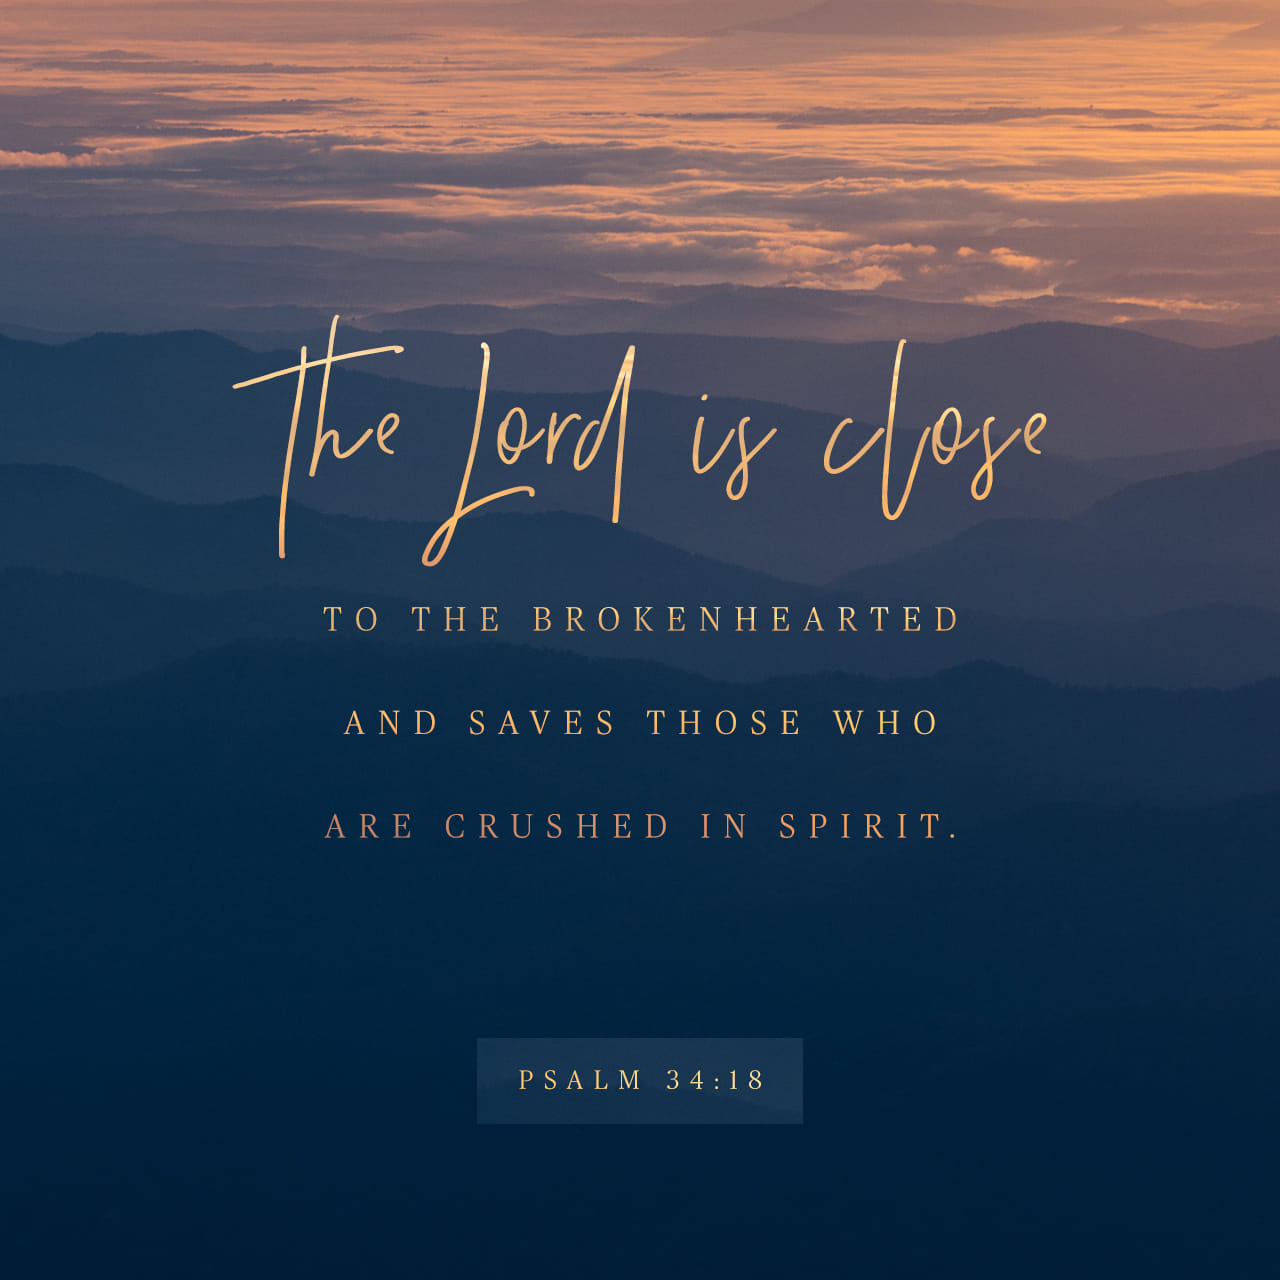 Psalm 34:18 The LORD is close to the brokenhearted and saves those who are crushed in spirit. | New International Version (NIV)